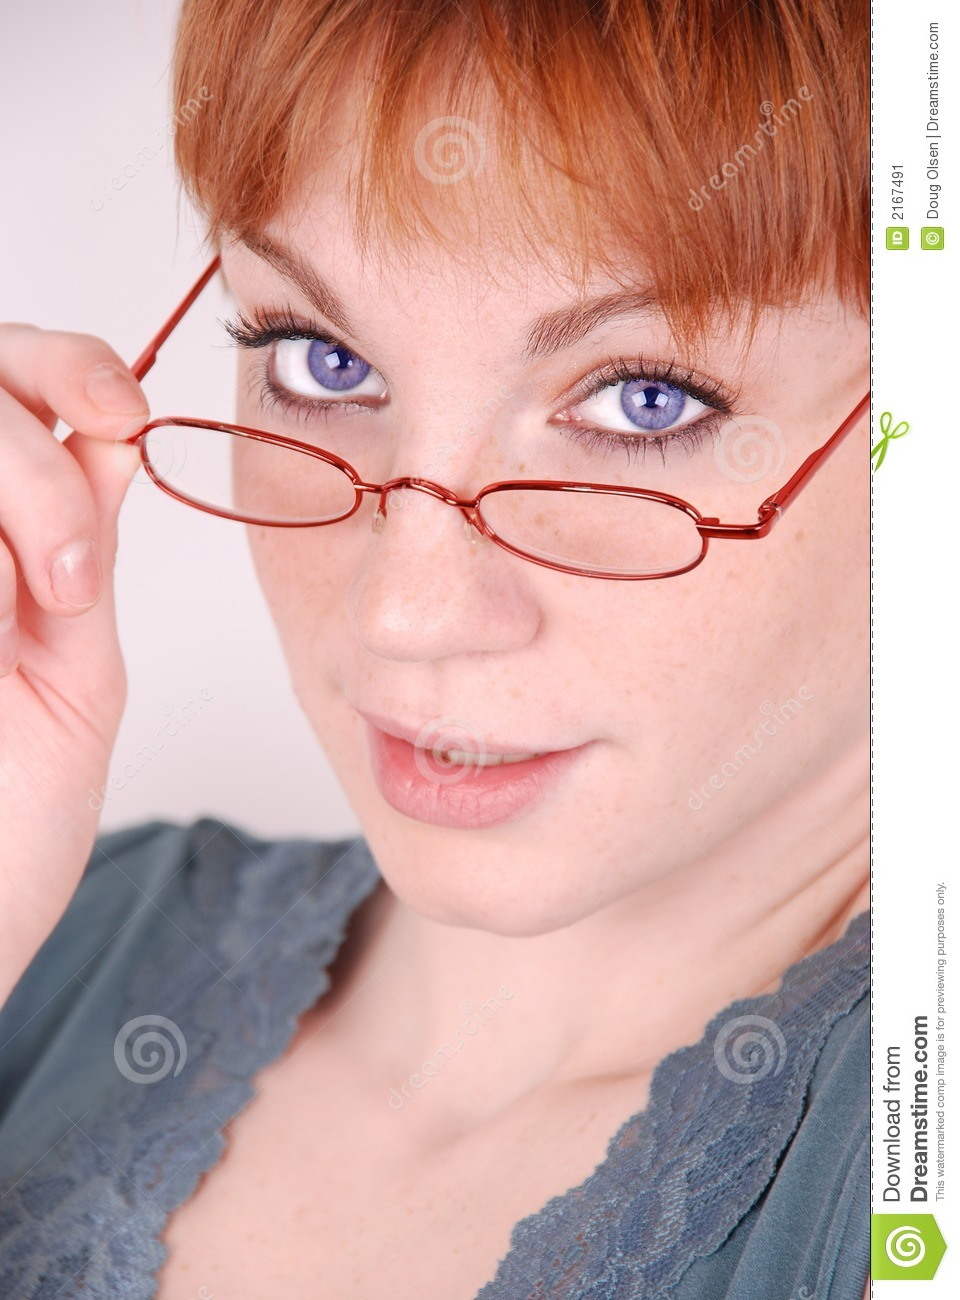 Stock Image: Redhead with glasses. Image: 2167491